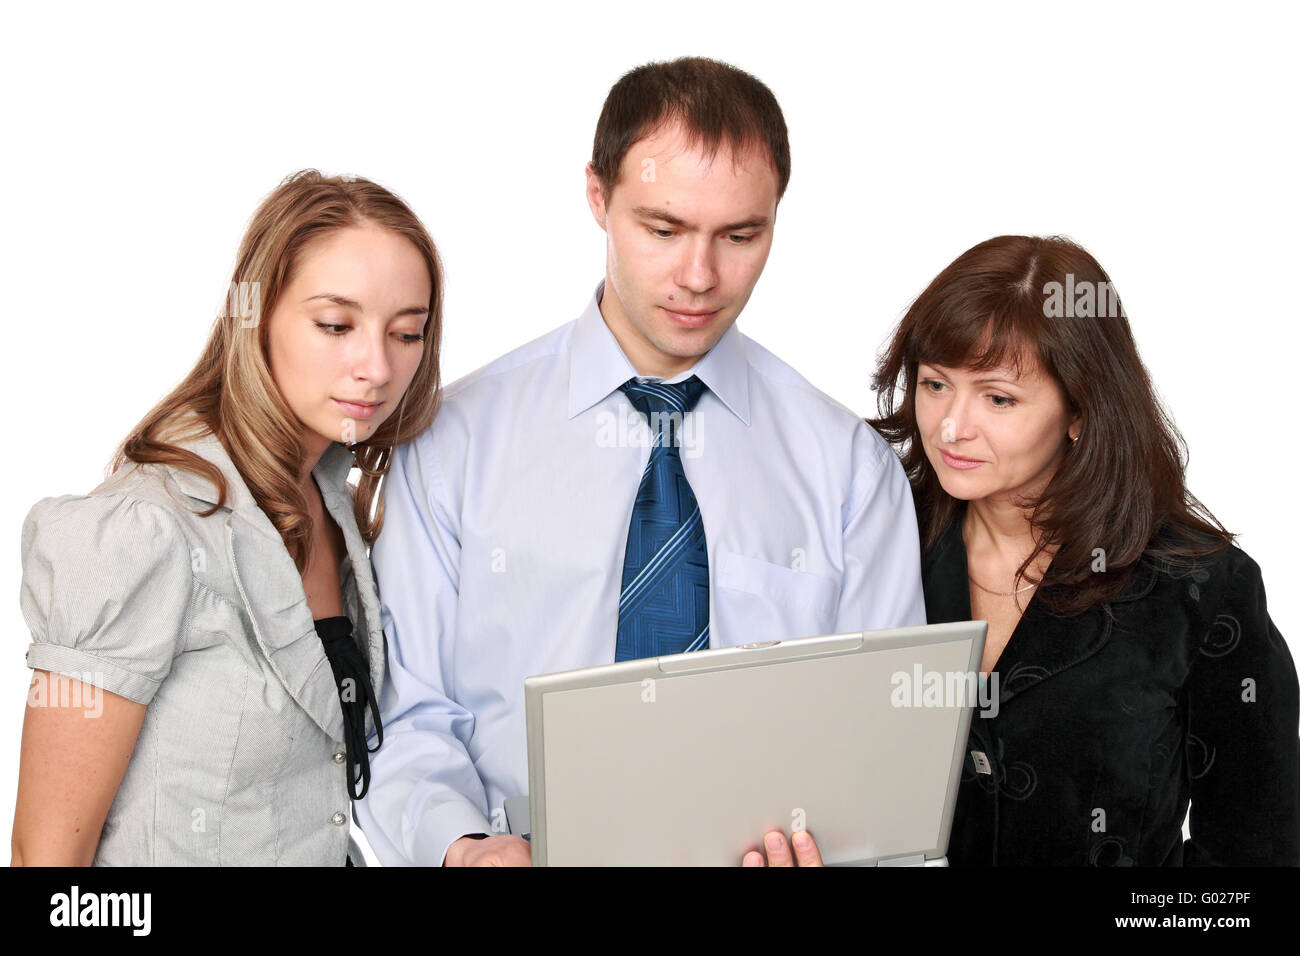 The man and women in front of the screen laptop - Stock Image